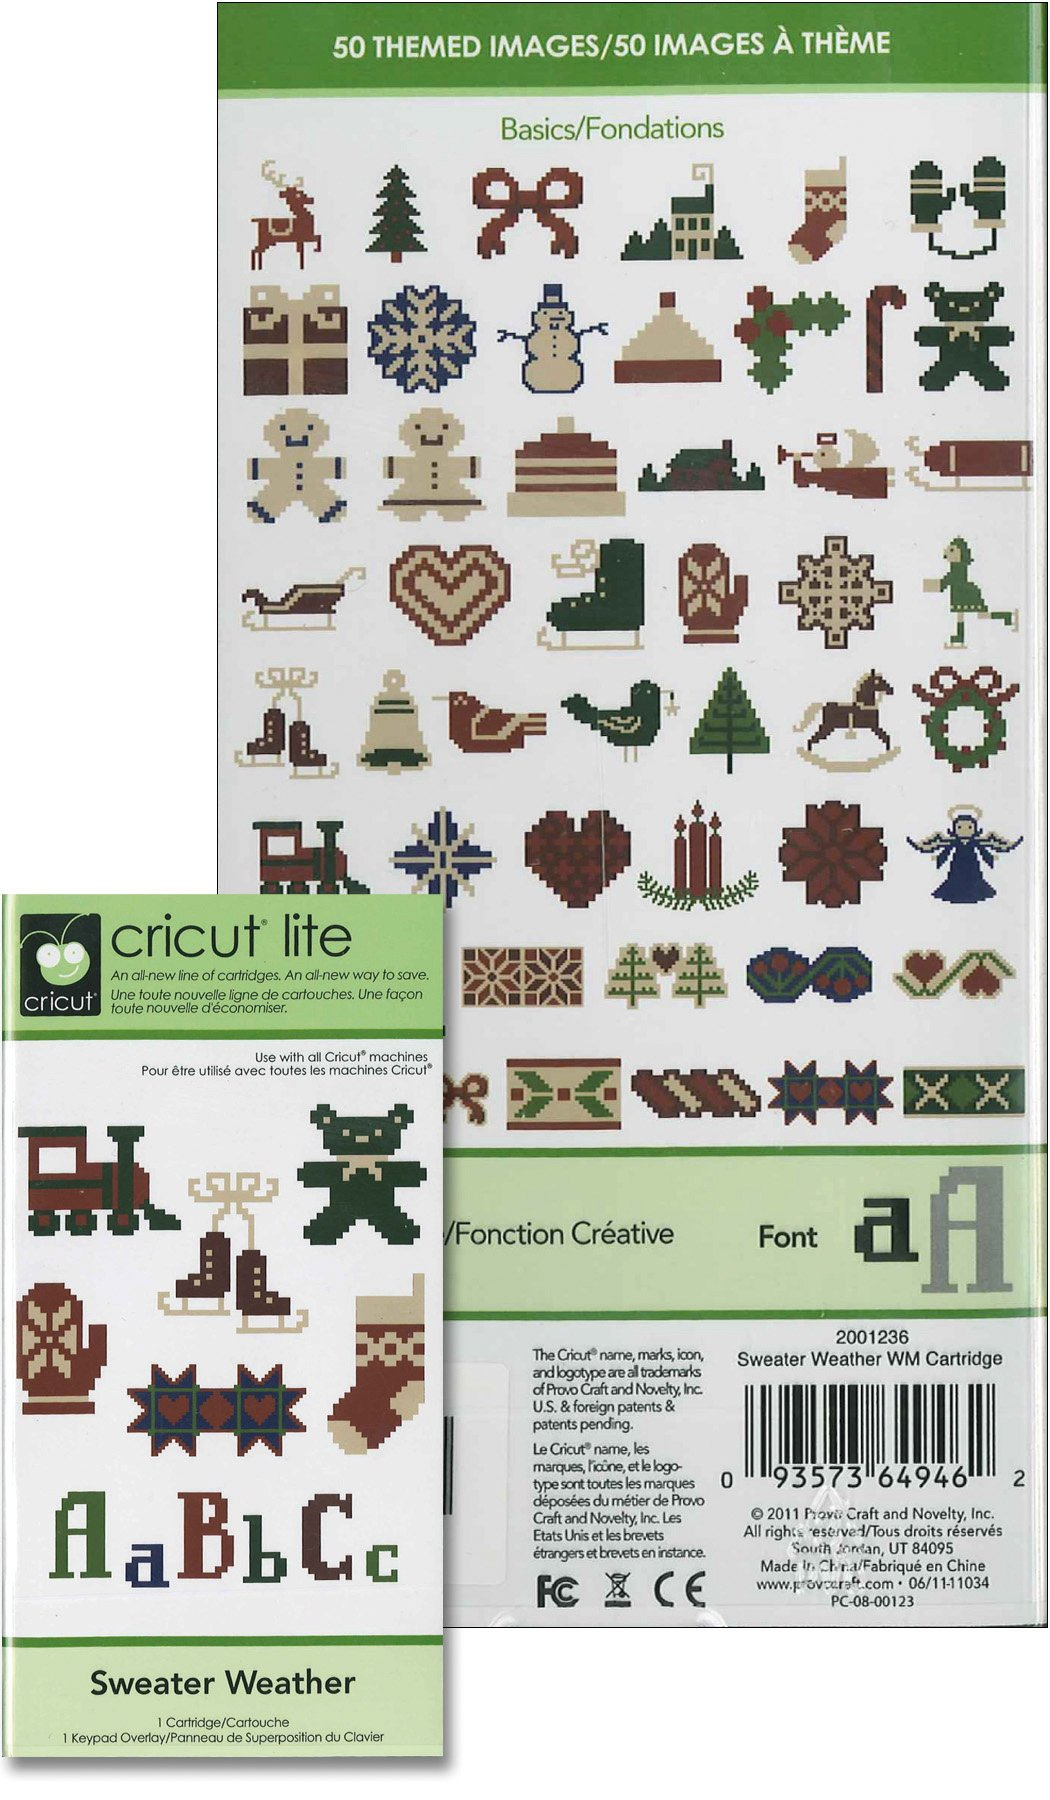 Cricut 2001236 Sweater Weather Cartridge